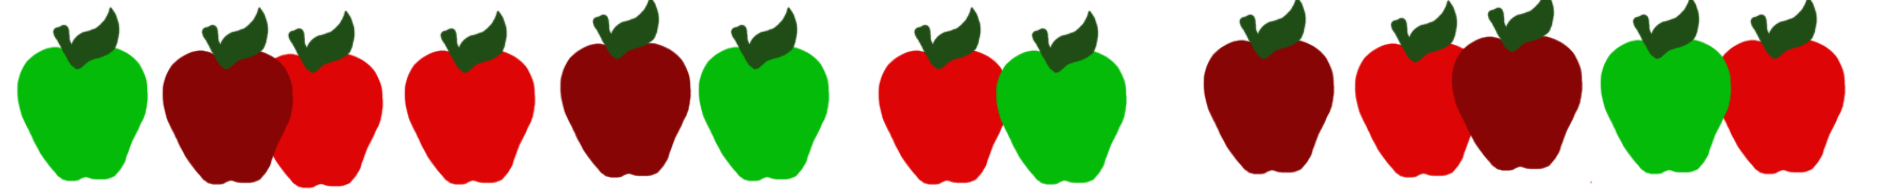 Image result for apple banner clipart